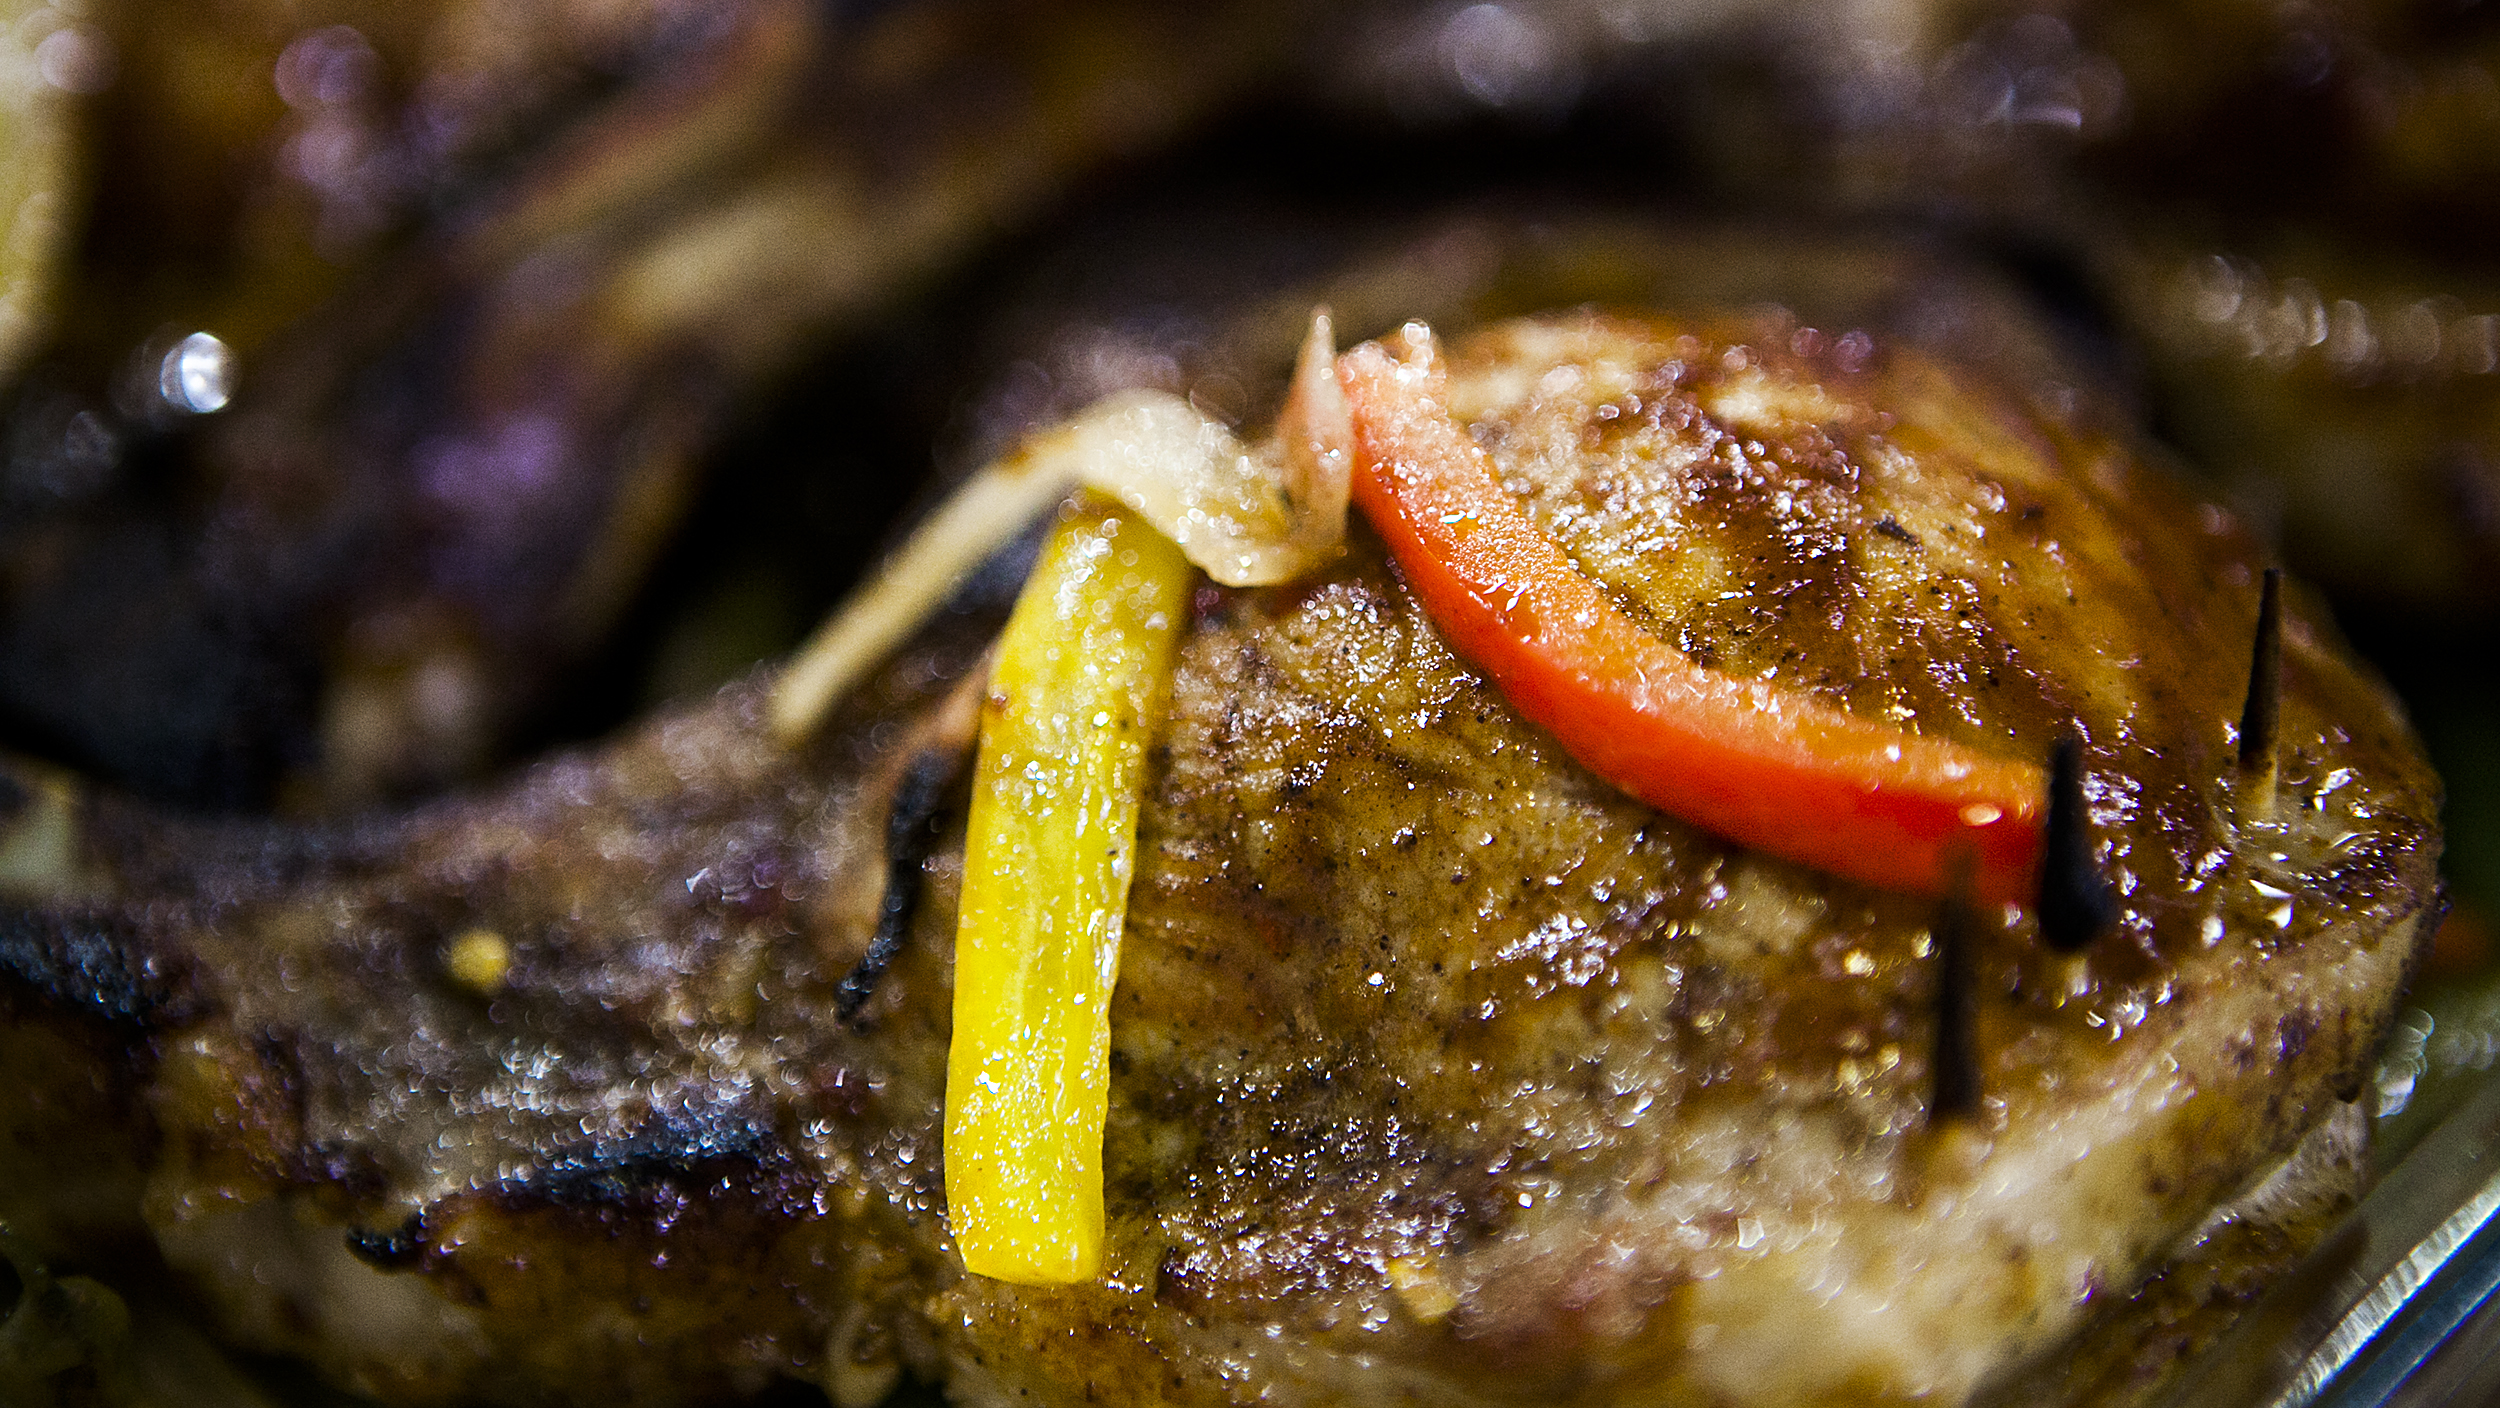 No Grill? No Problem! Make Barbecued Pork Chops In The Oven Today